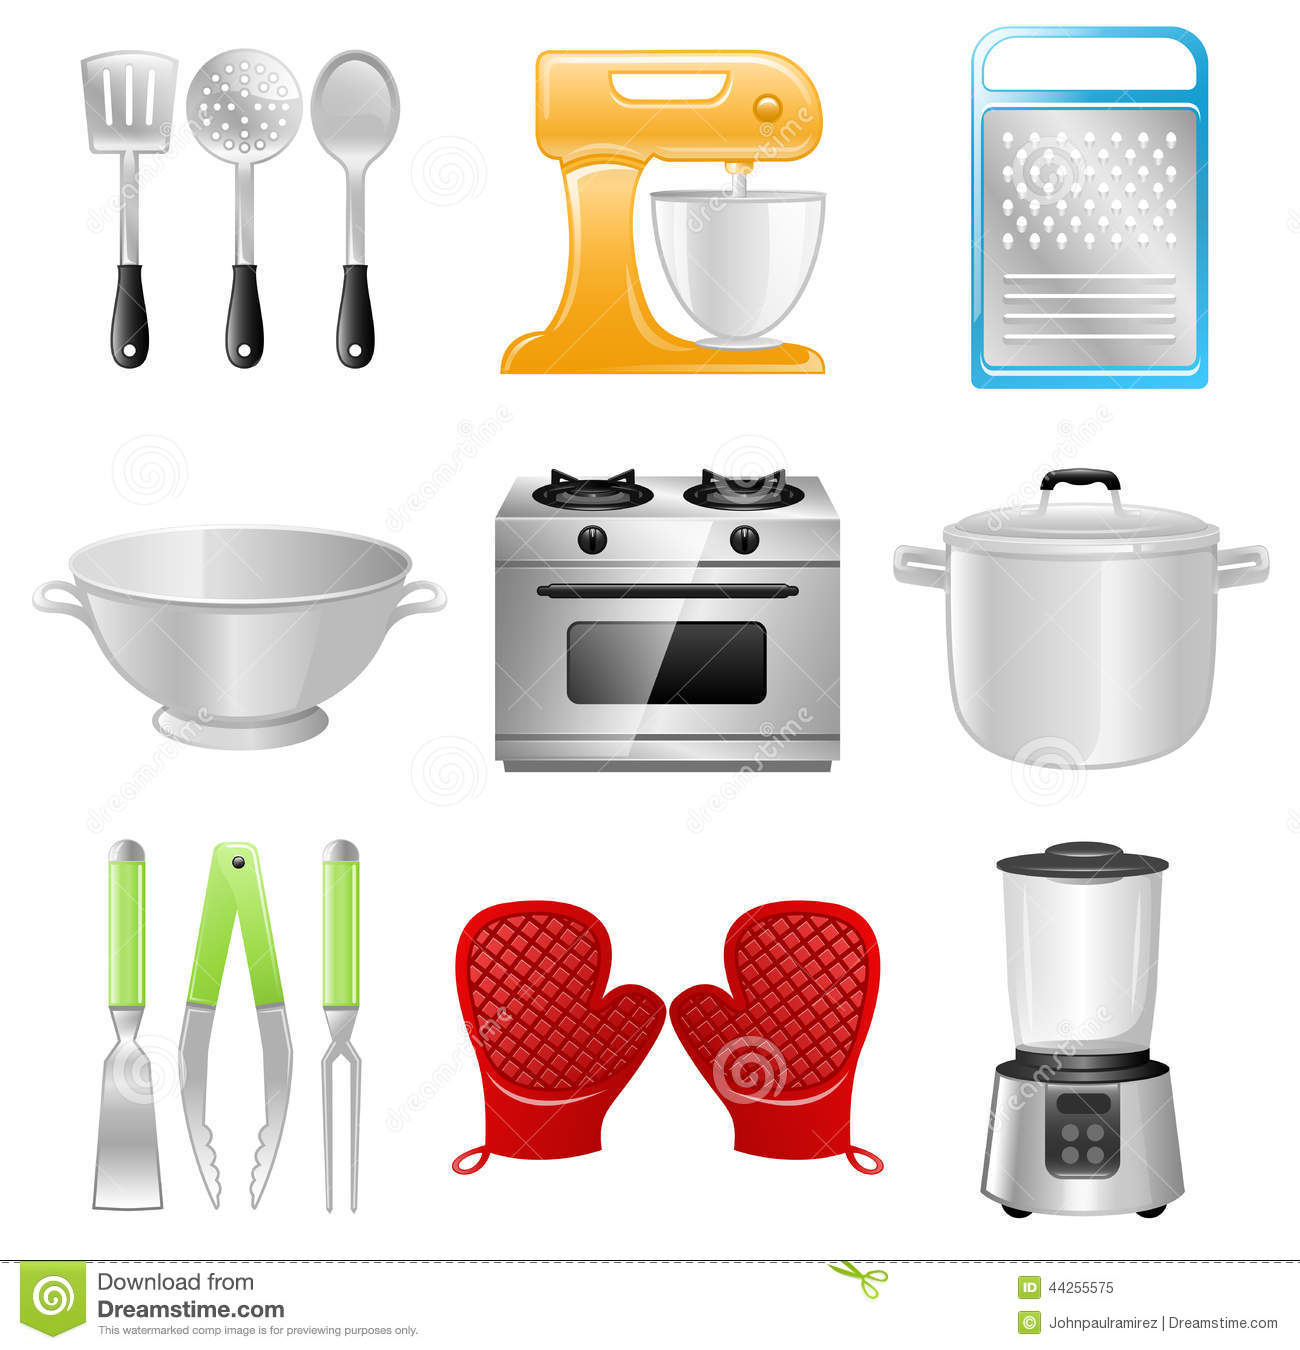 kitchen equipment modern round table utensils cooking restaurant stock vector illustration of collection different and appliances best for concept